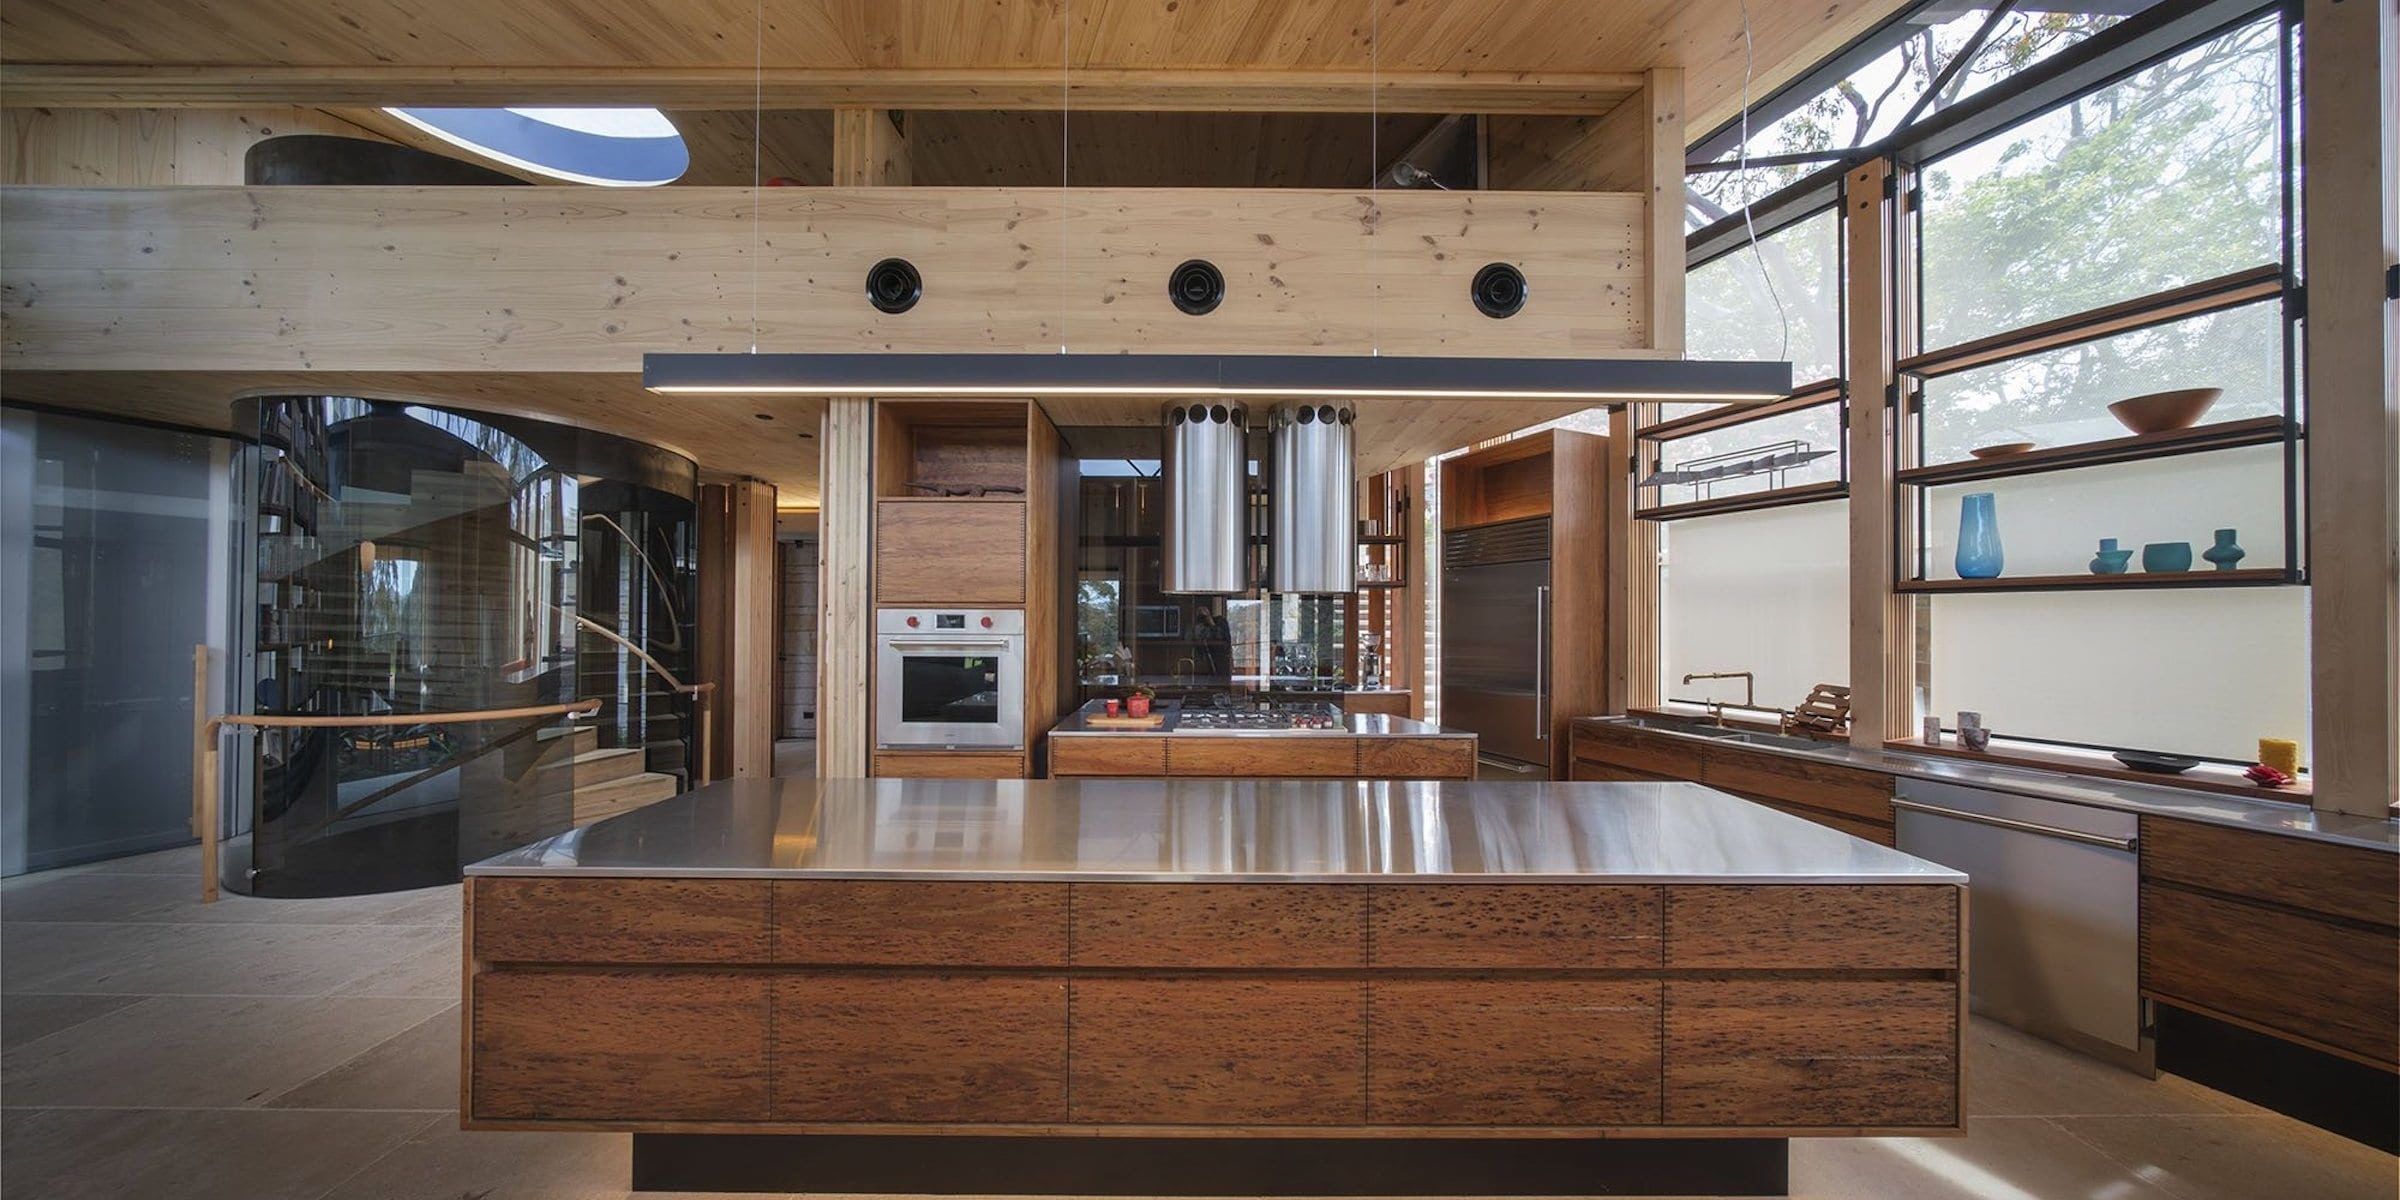 Blackwood shines and shows off its rich character in the Seed House kitchen